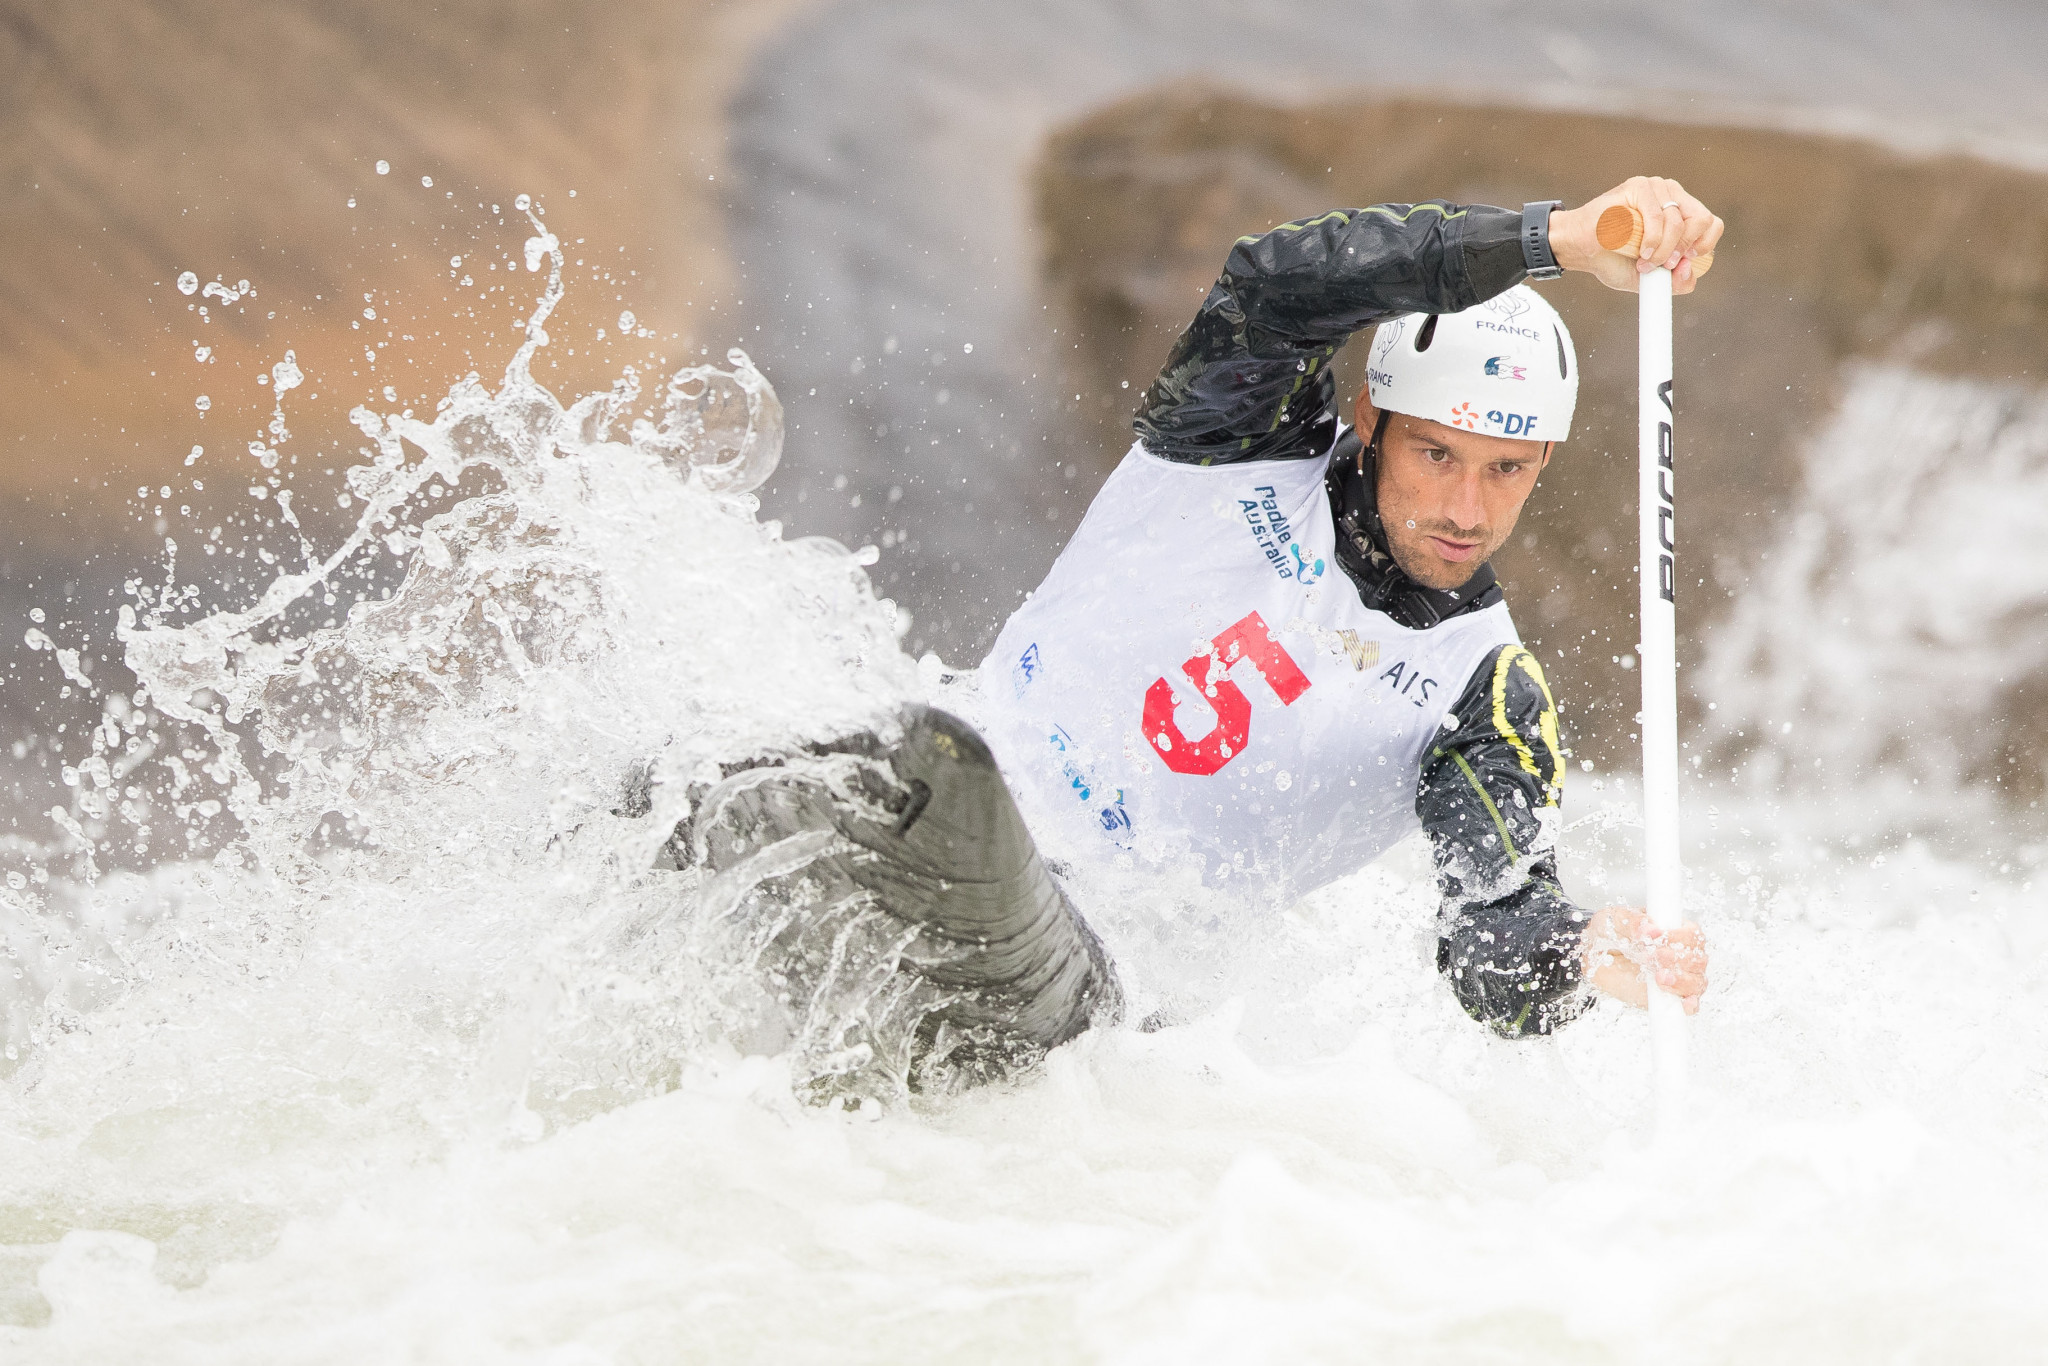 Hosts France have high medal hopes in a competitive field at Canoe Slalom European Championships